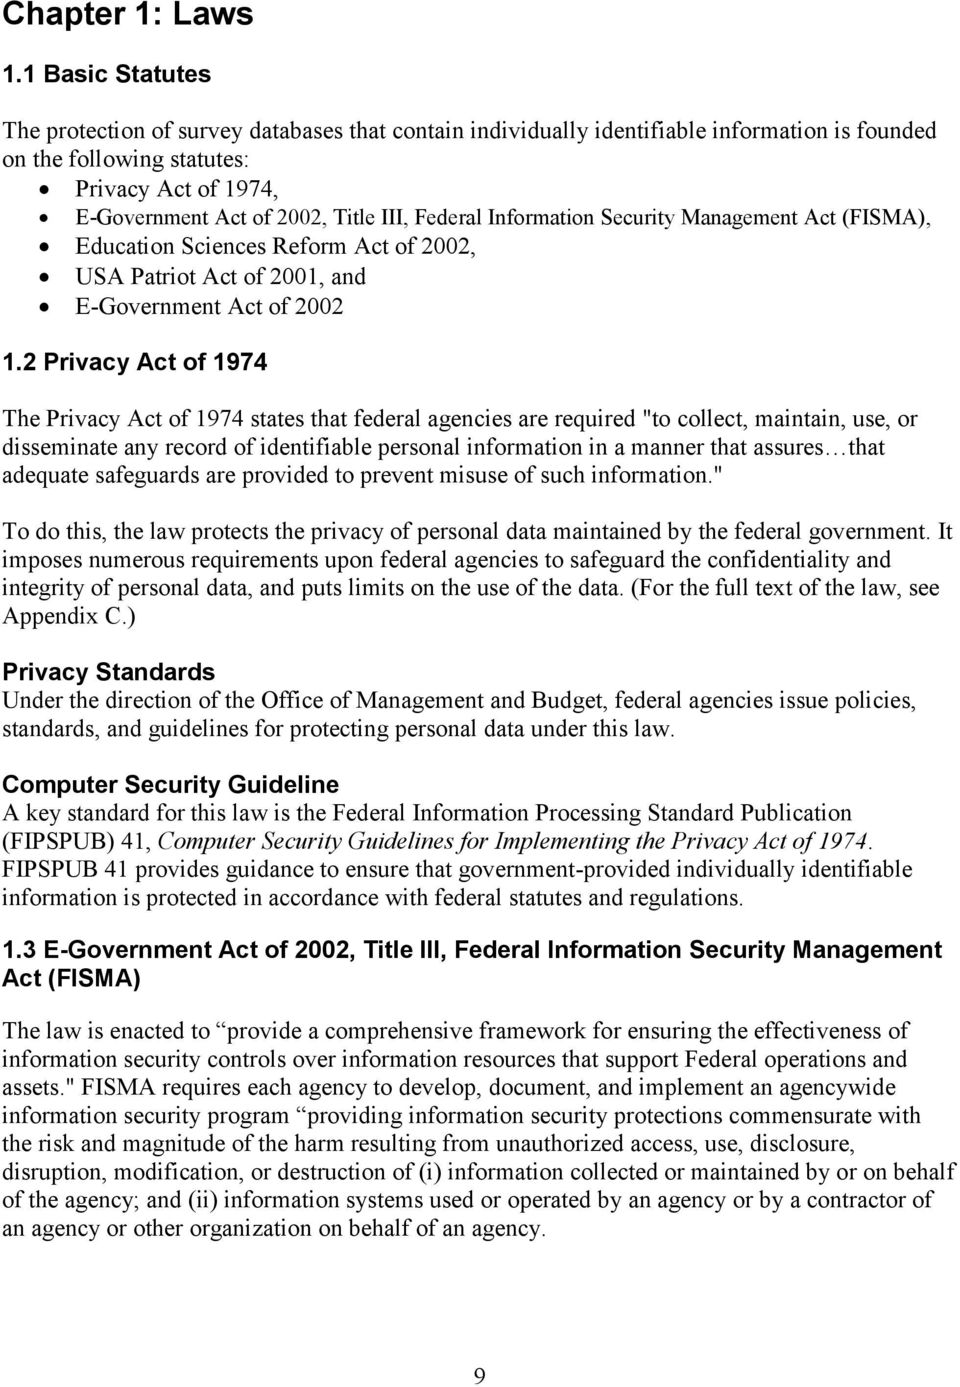 Federal Information Security Management Act (FISMA), Education Sciences Reform Act of 2002, USA Patriot Act of 2001, and E-Government Act of 2002 1.